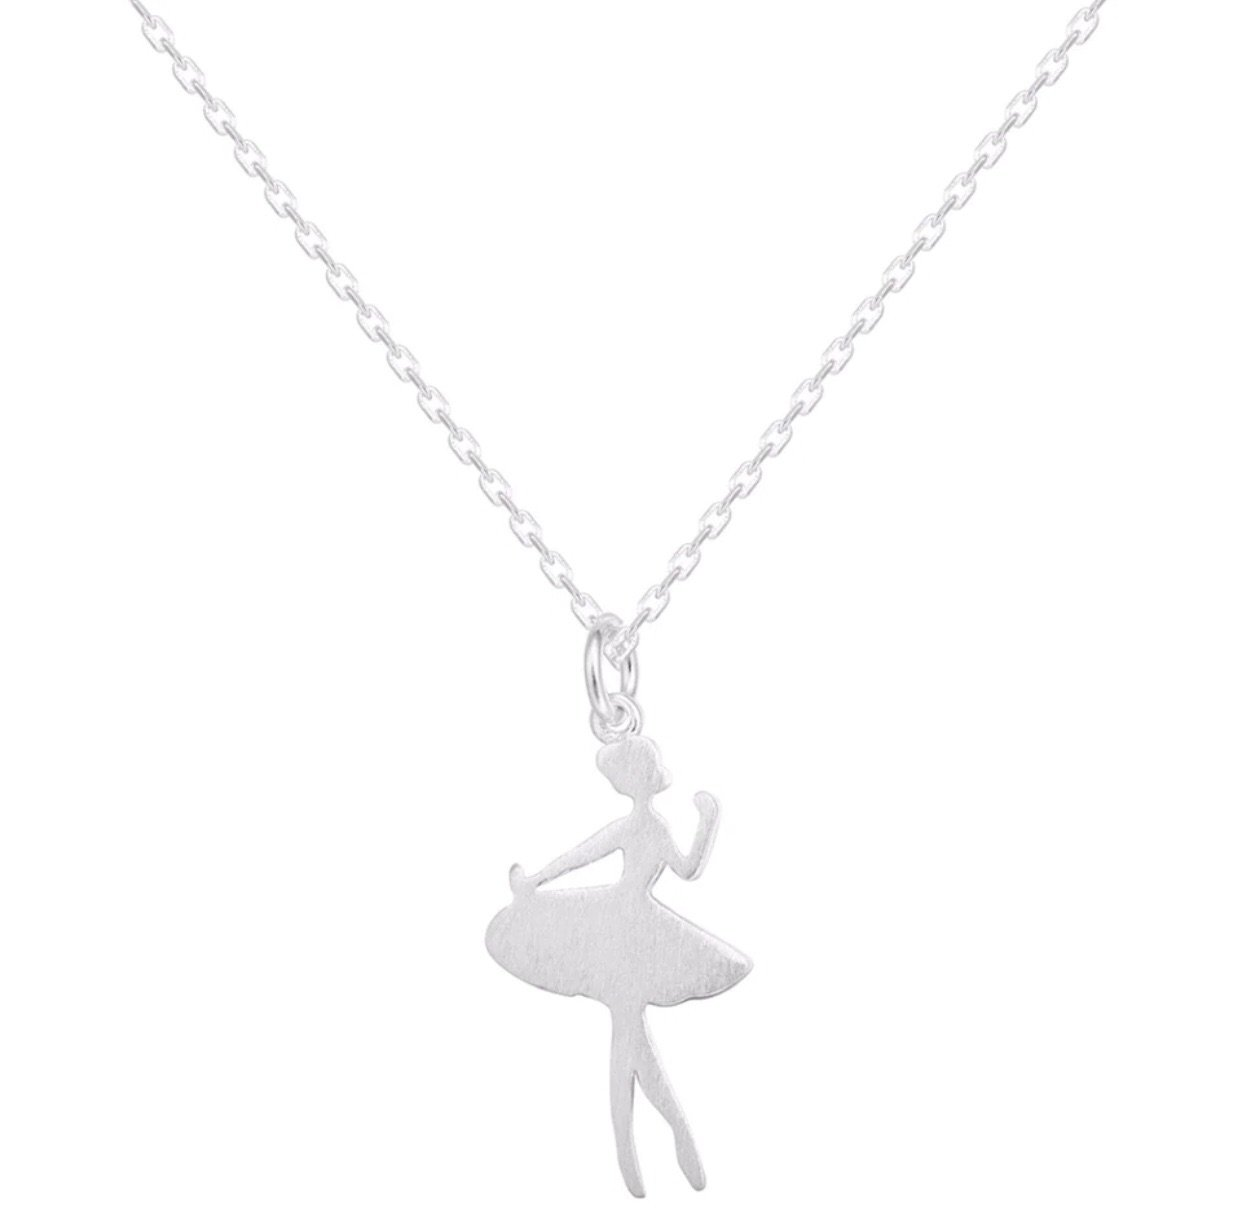 Brushed Silver Ballerina Girl Necklace